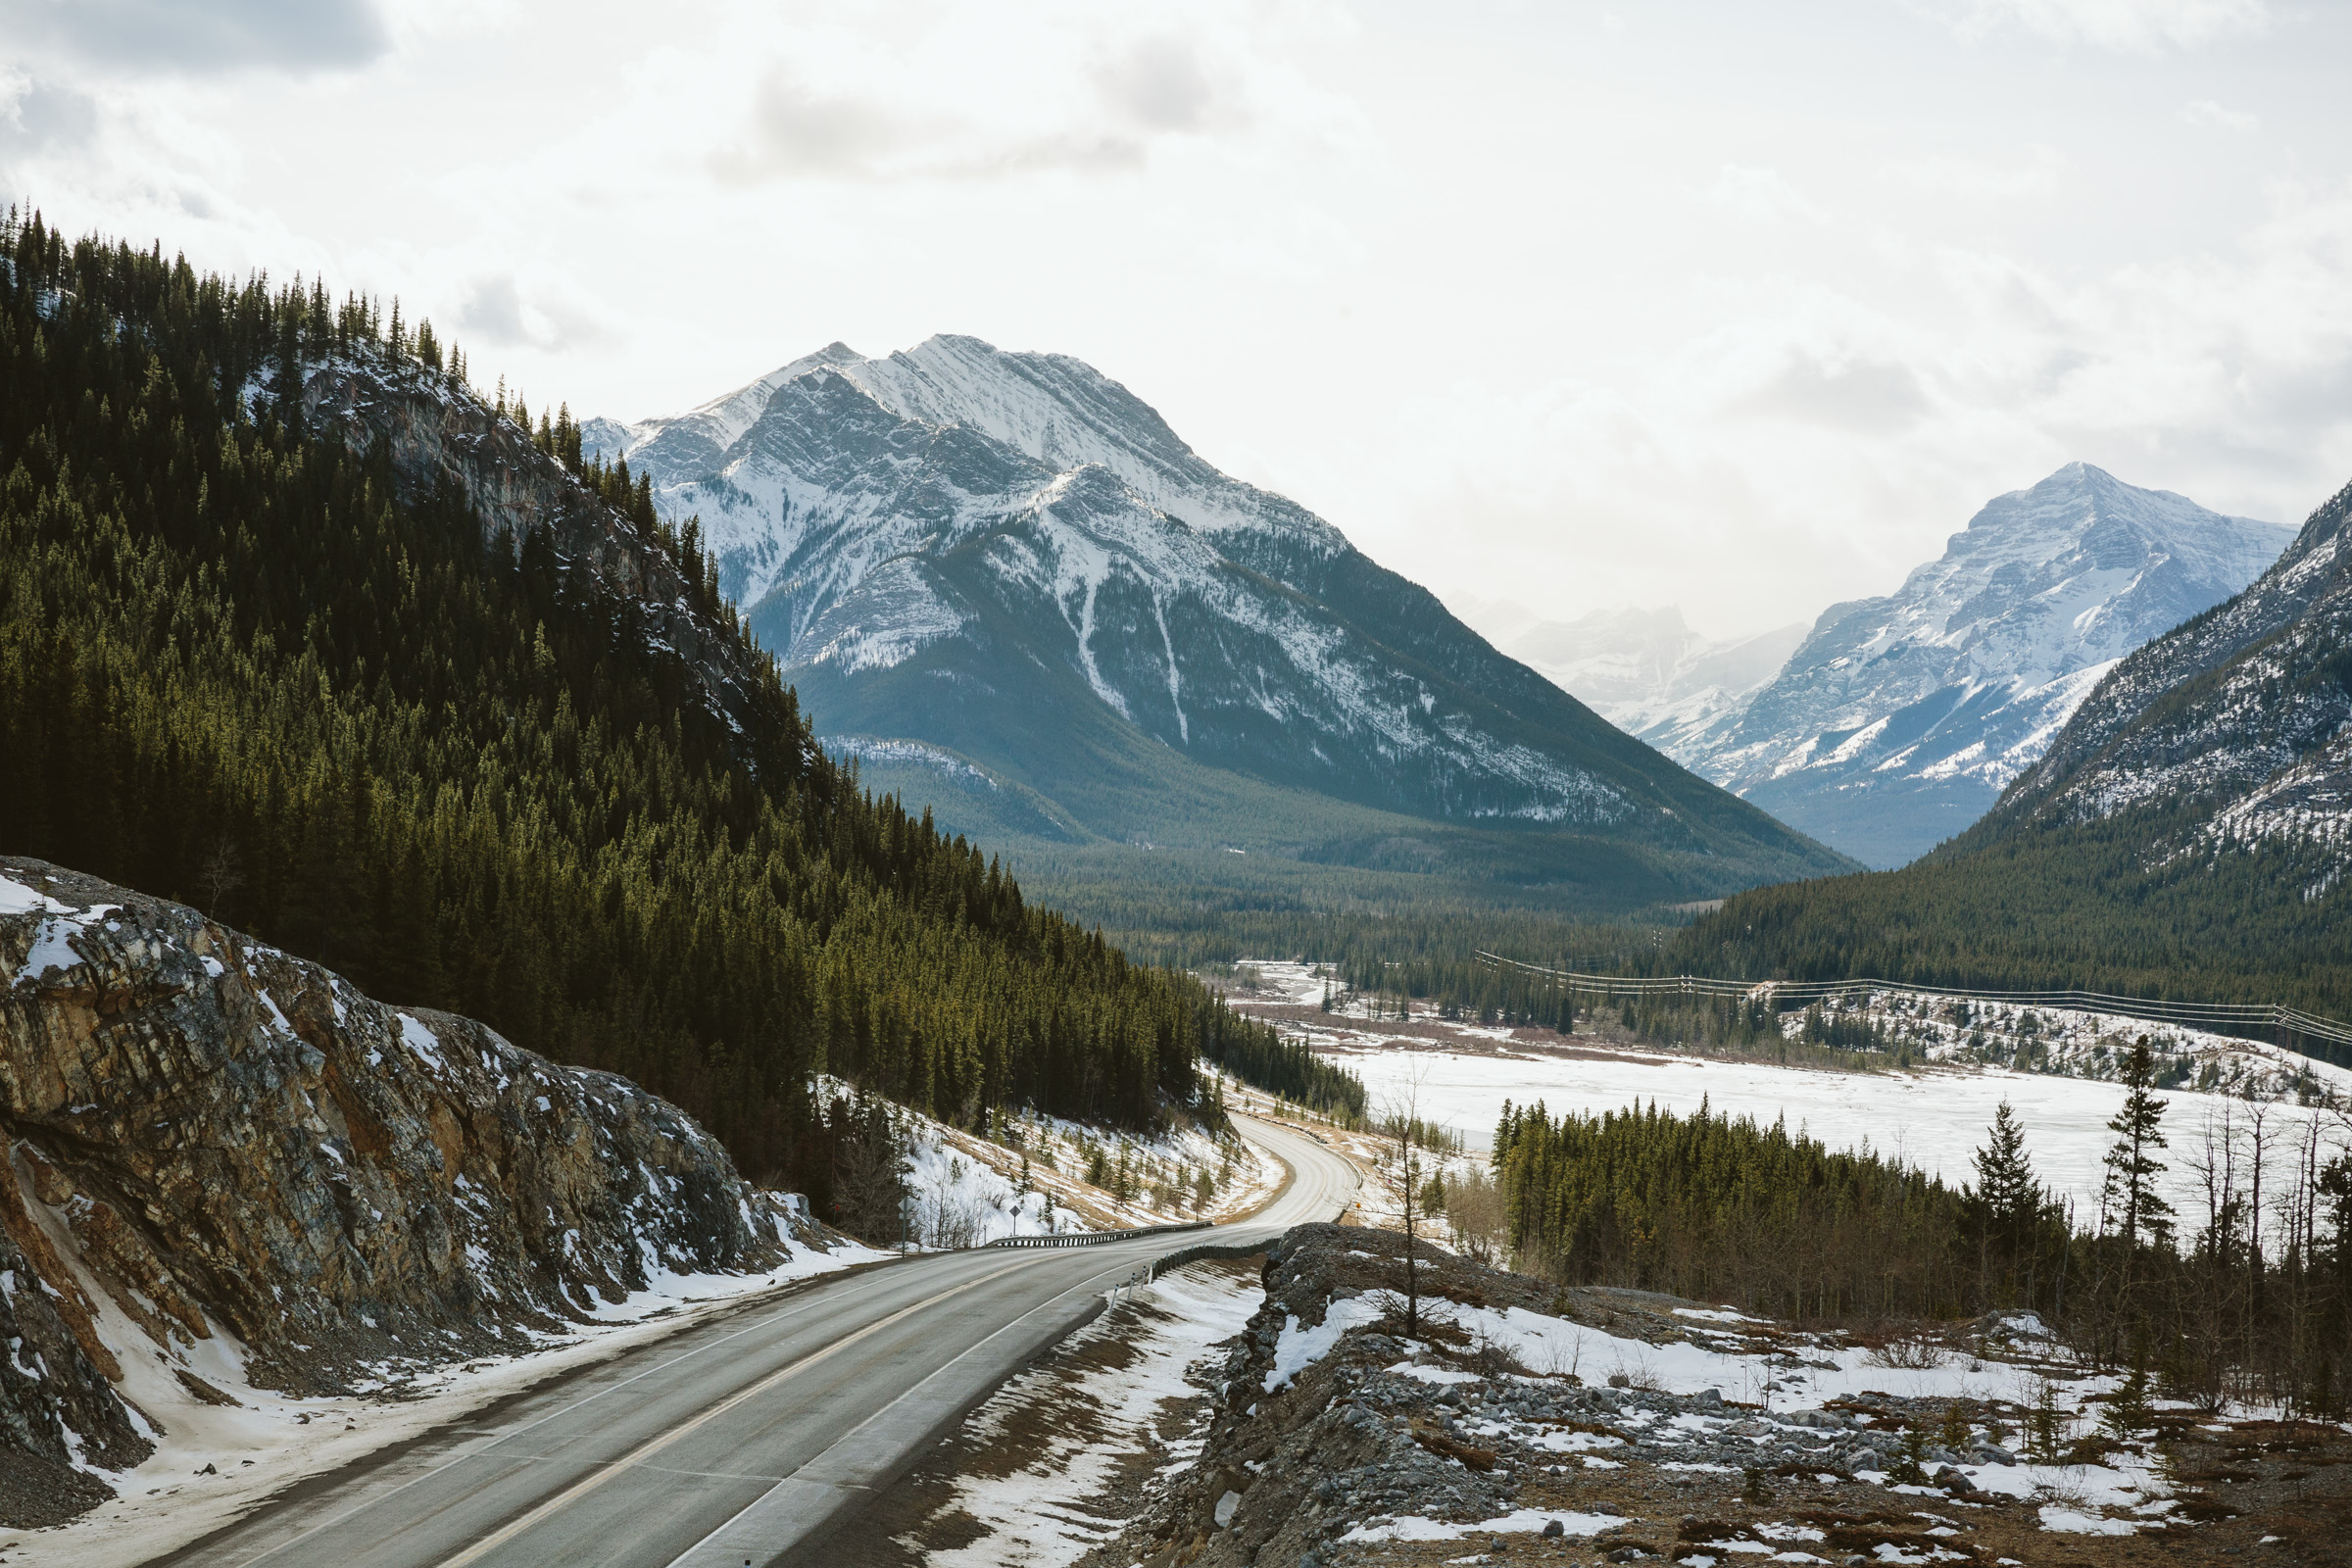 canada-alberta-lifestyle-photography-mikeseehagel-43